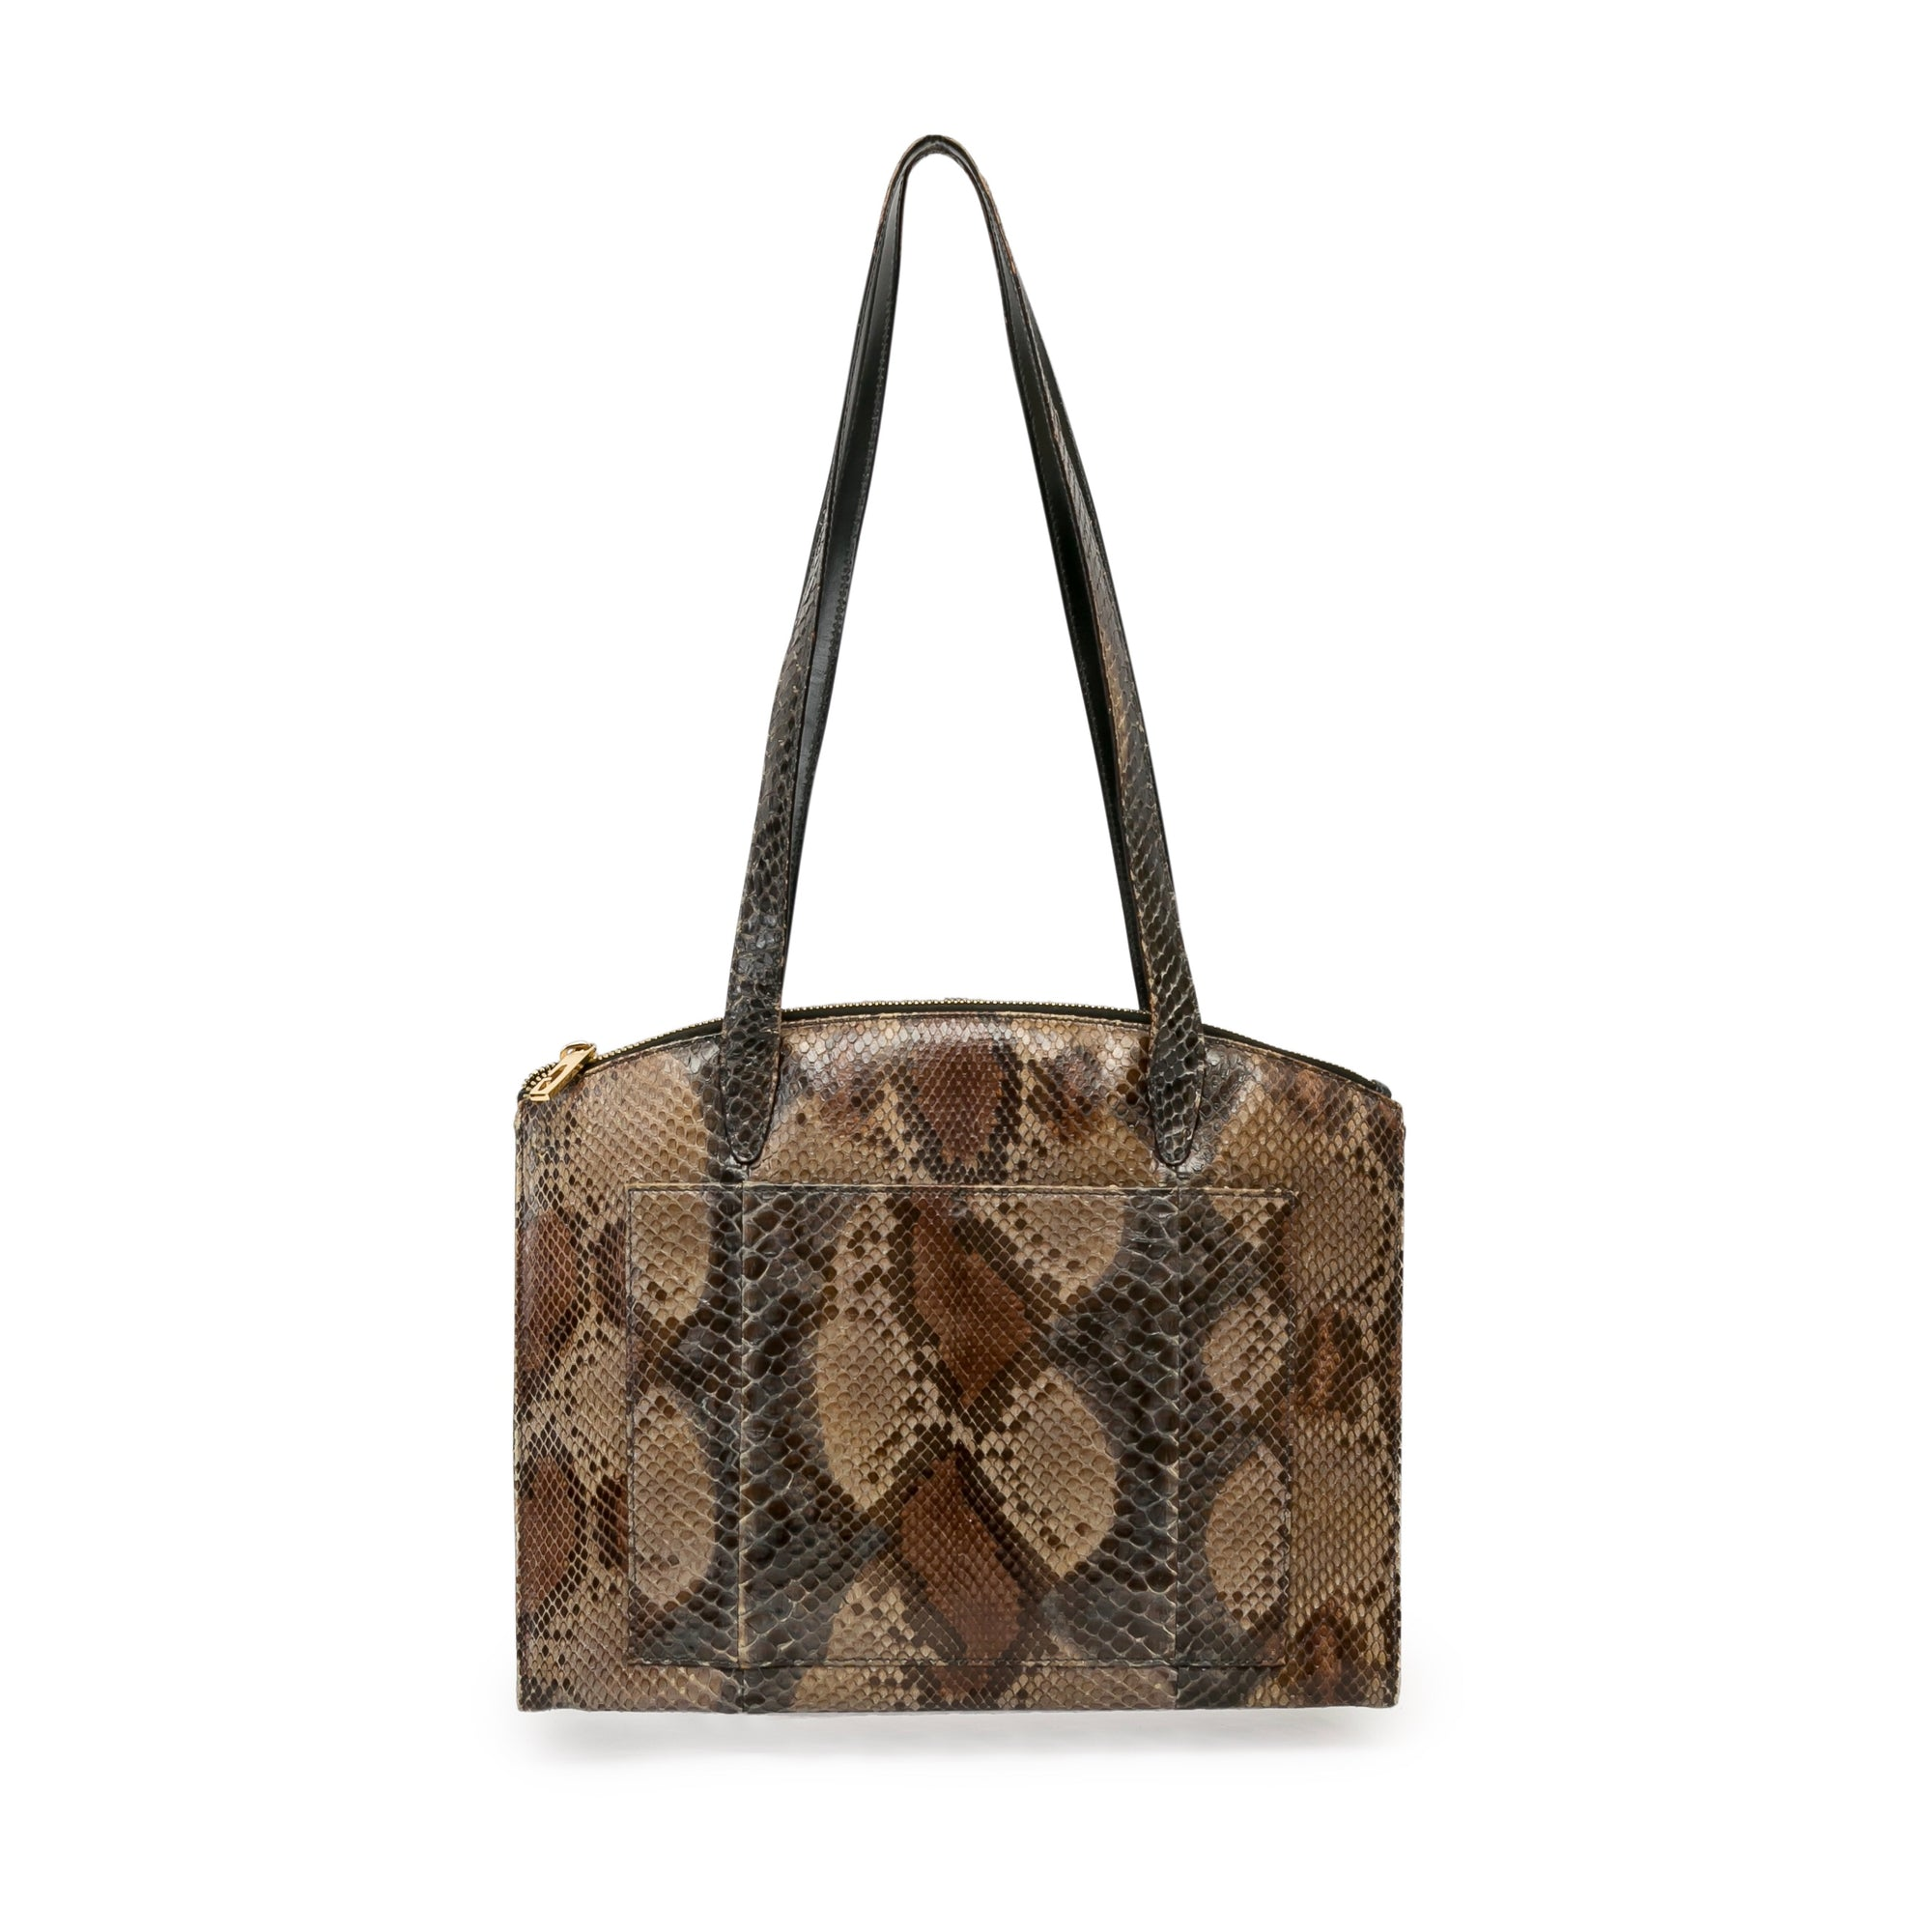 ladiesoflux - Gucci Vintage Snakeskin Shoulder Bag - Ladies Of Lux - Handbag